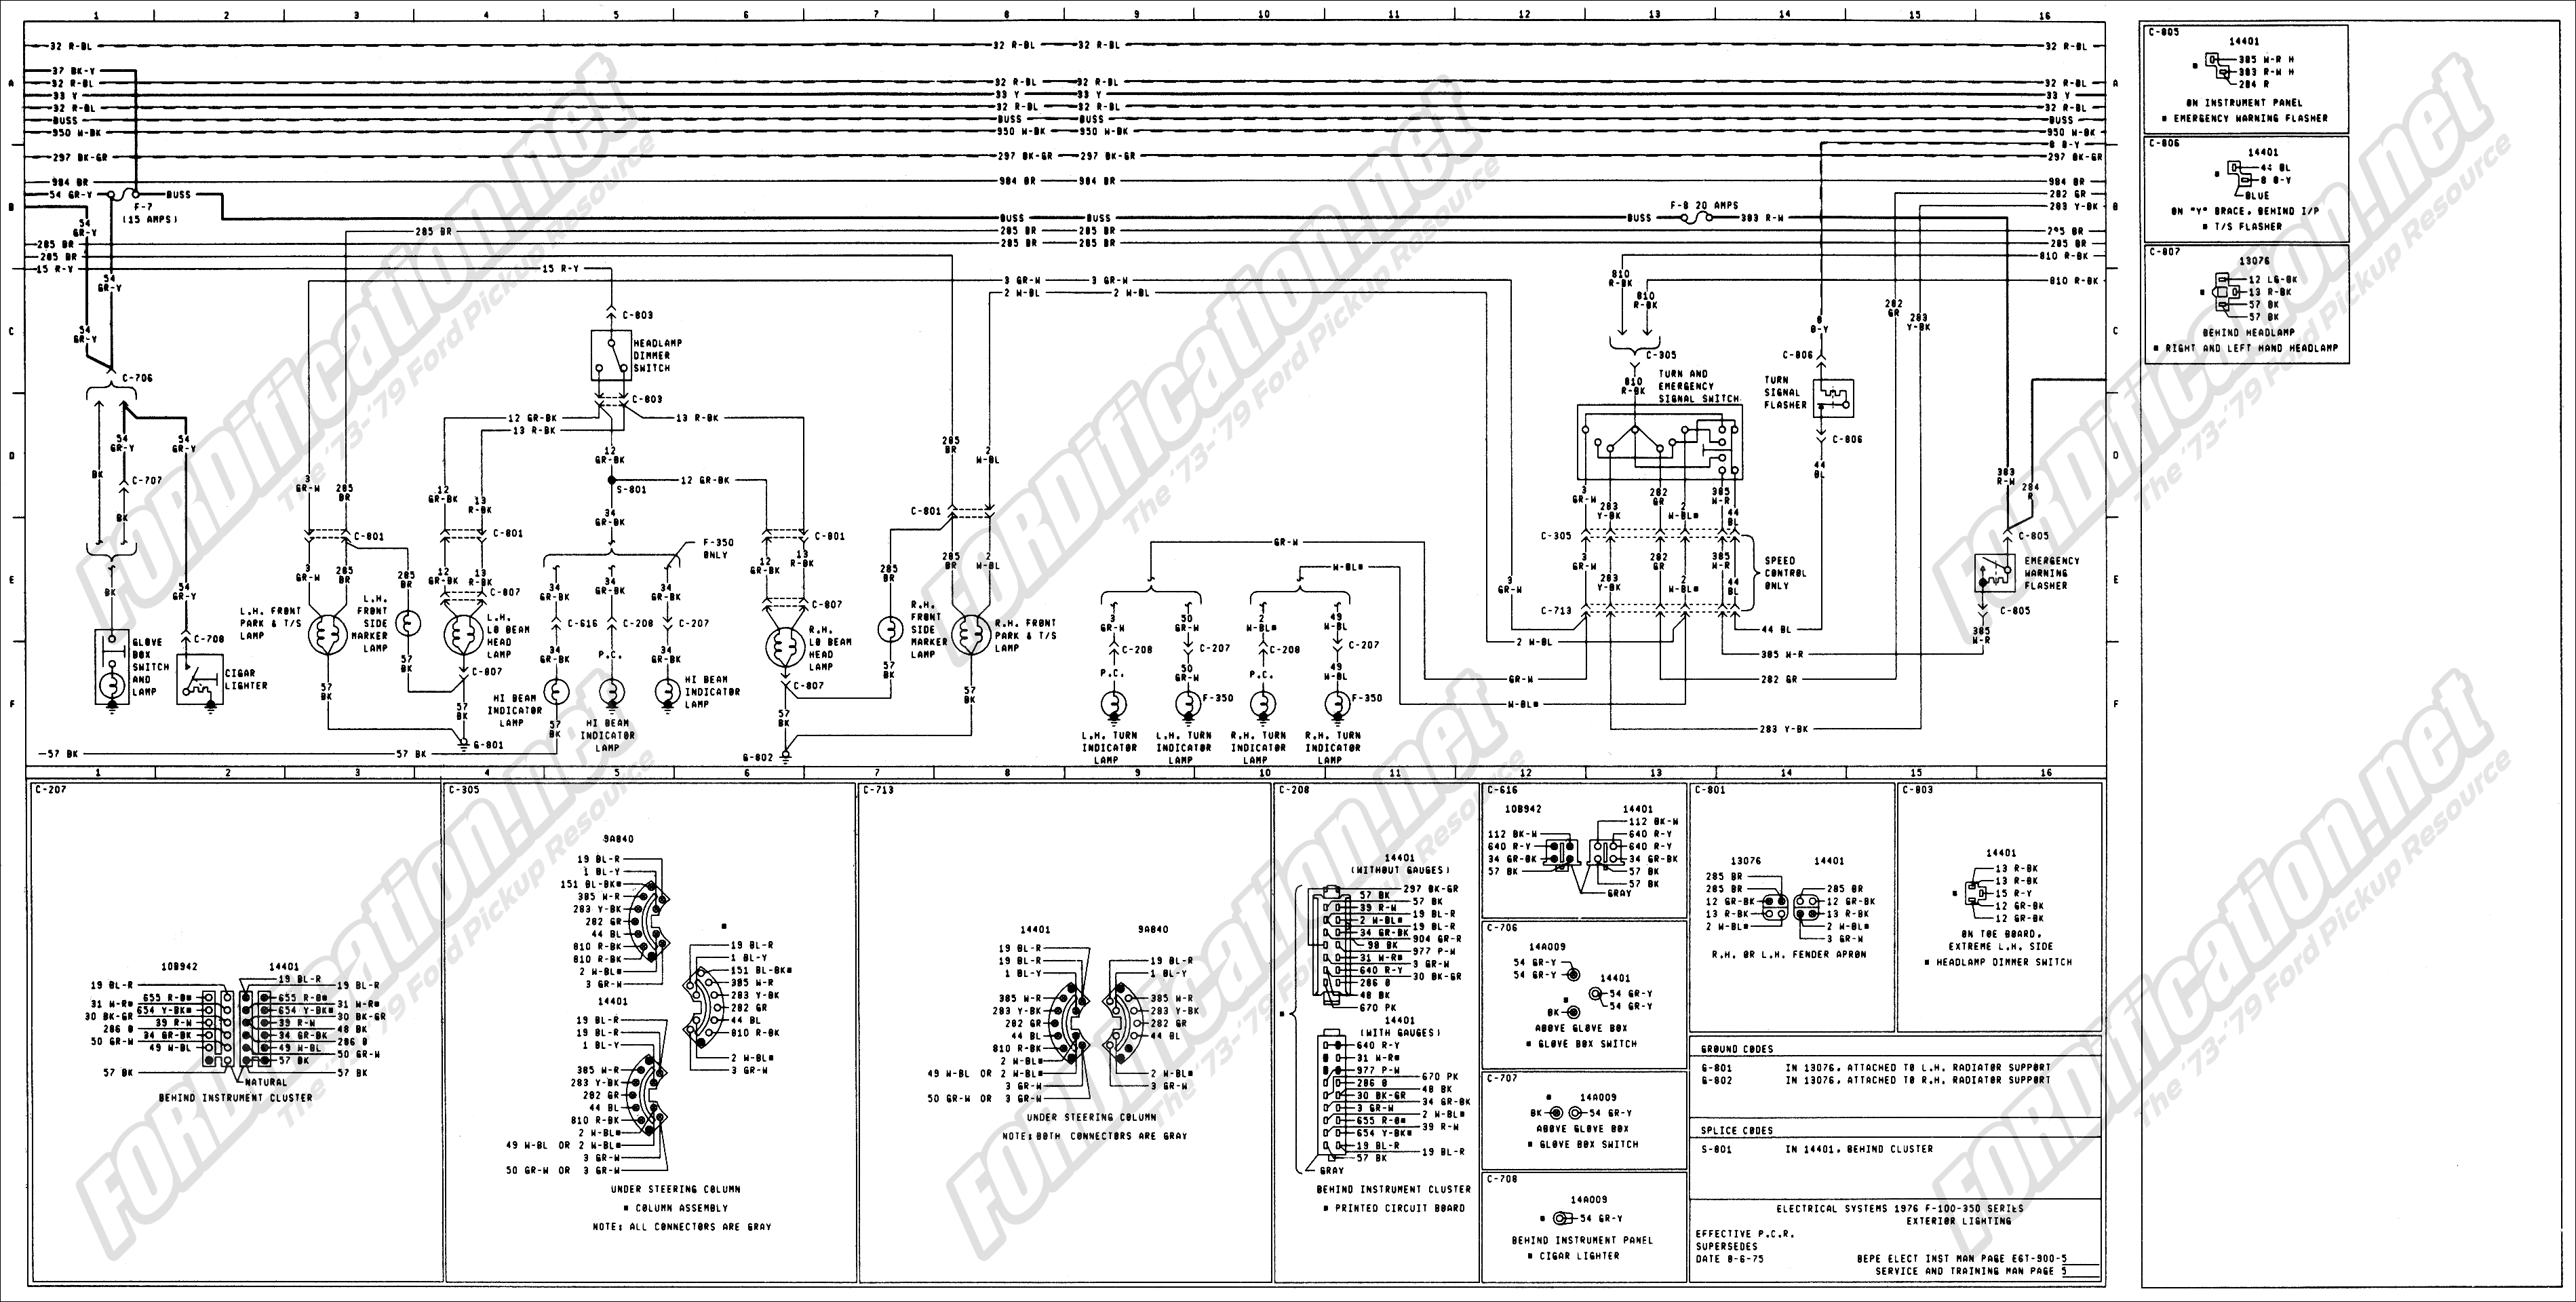 1973 1979 ford truck wiring diagrams schematics fordification net rh fordification net Ford Ignition System Wiring Diagram Ford Truck Wiring Diagrams